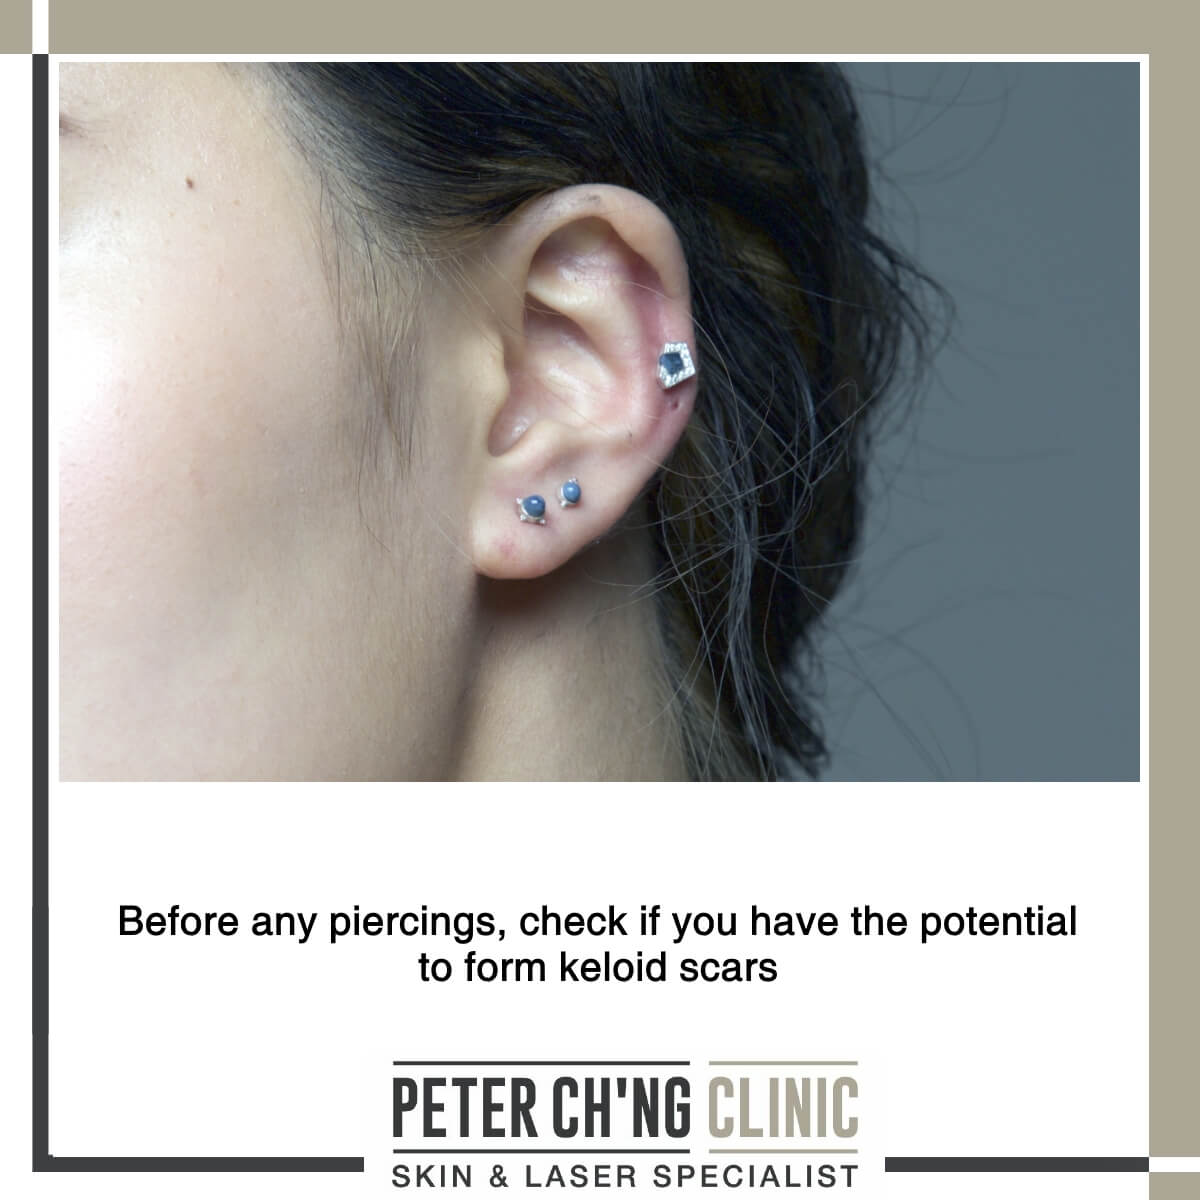 Piercing and keloids